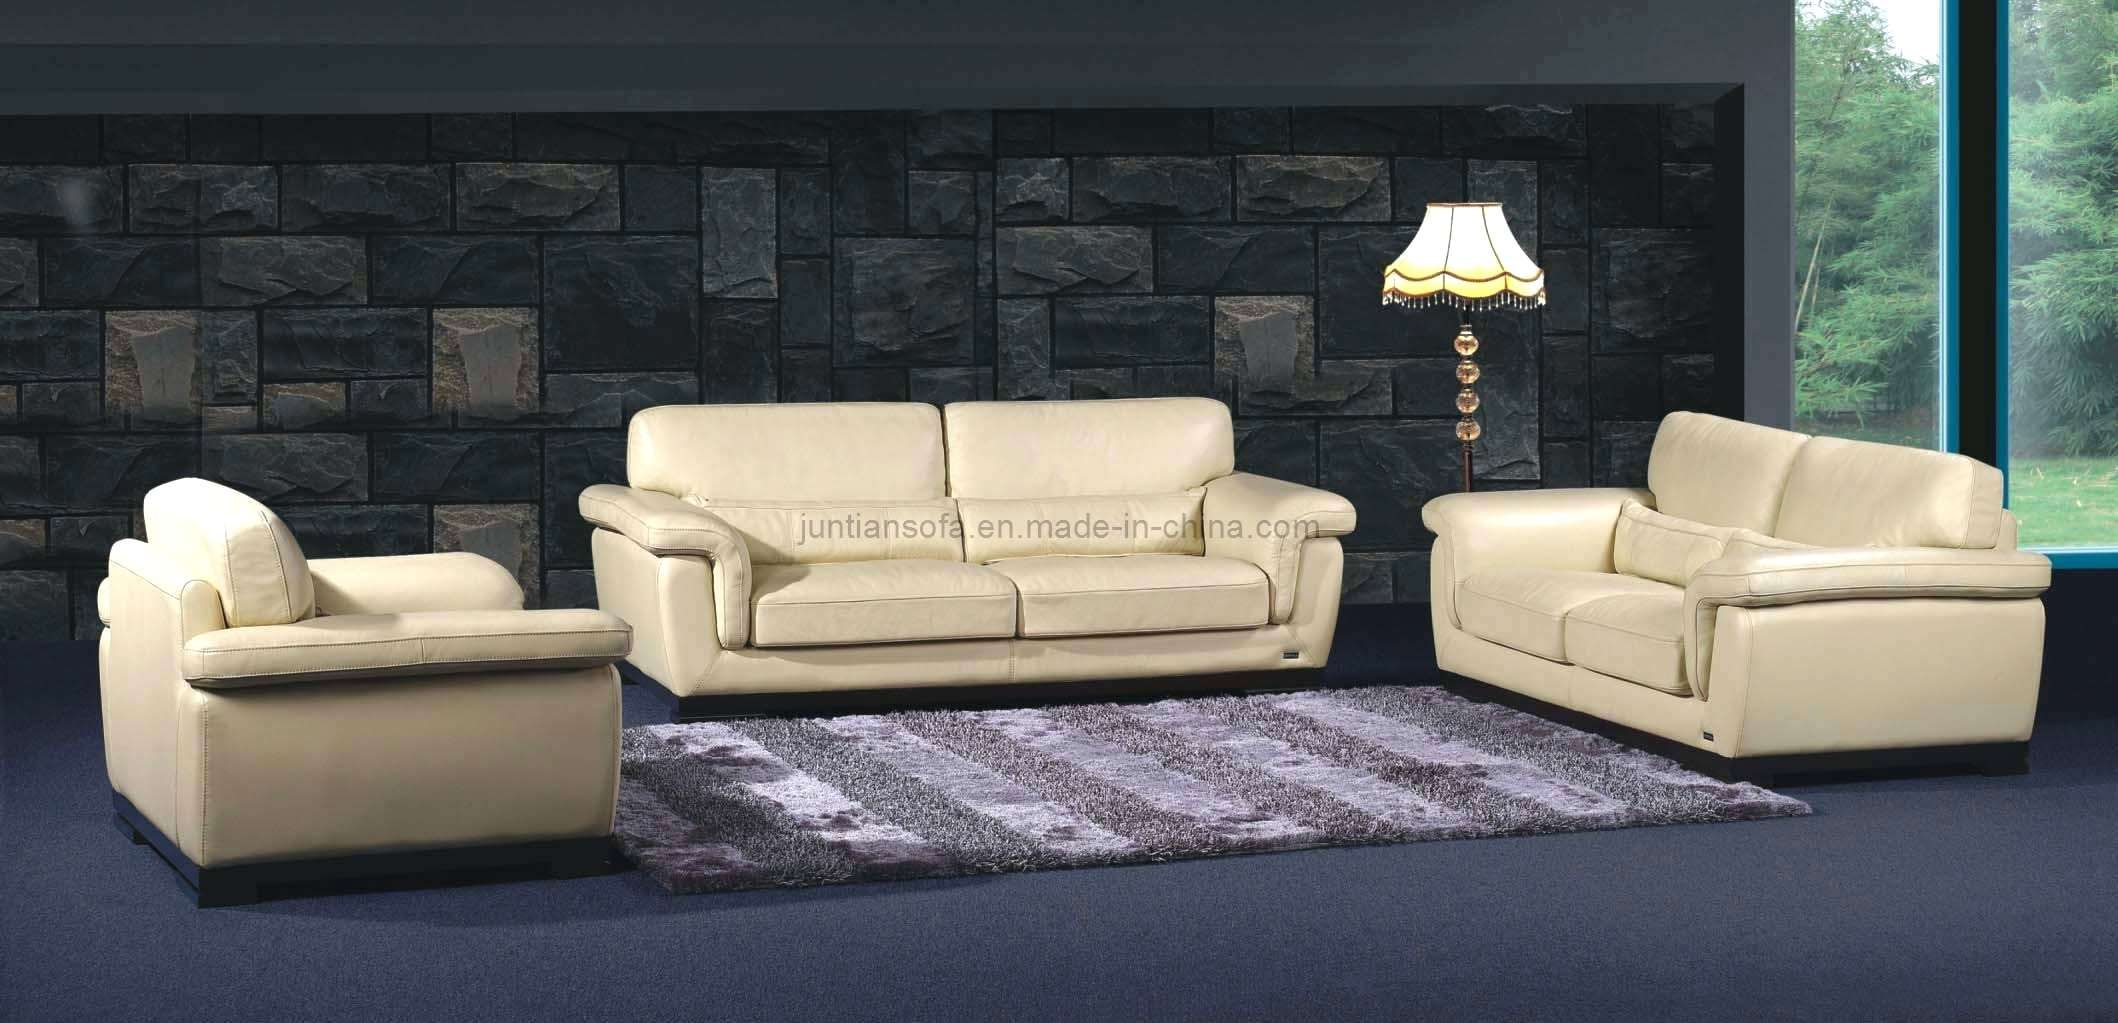 Pleasing Good Best Quality Sofas Uk 24 With Additional Dfs Sofa Ideas Download Free Architecture Designs Grimeyleaguecom